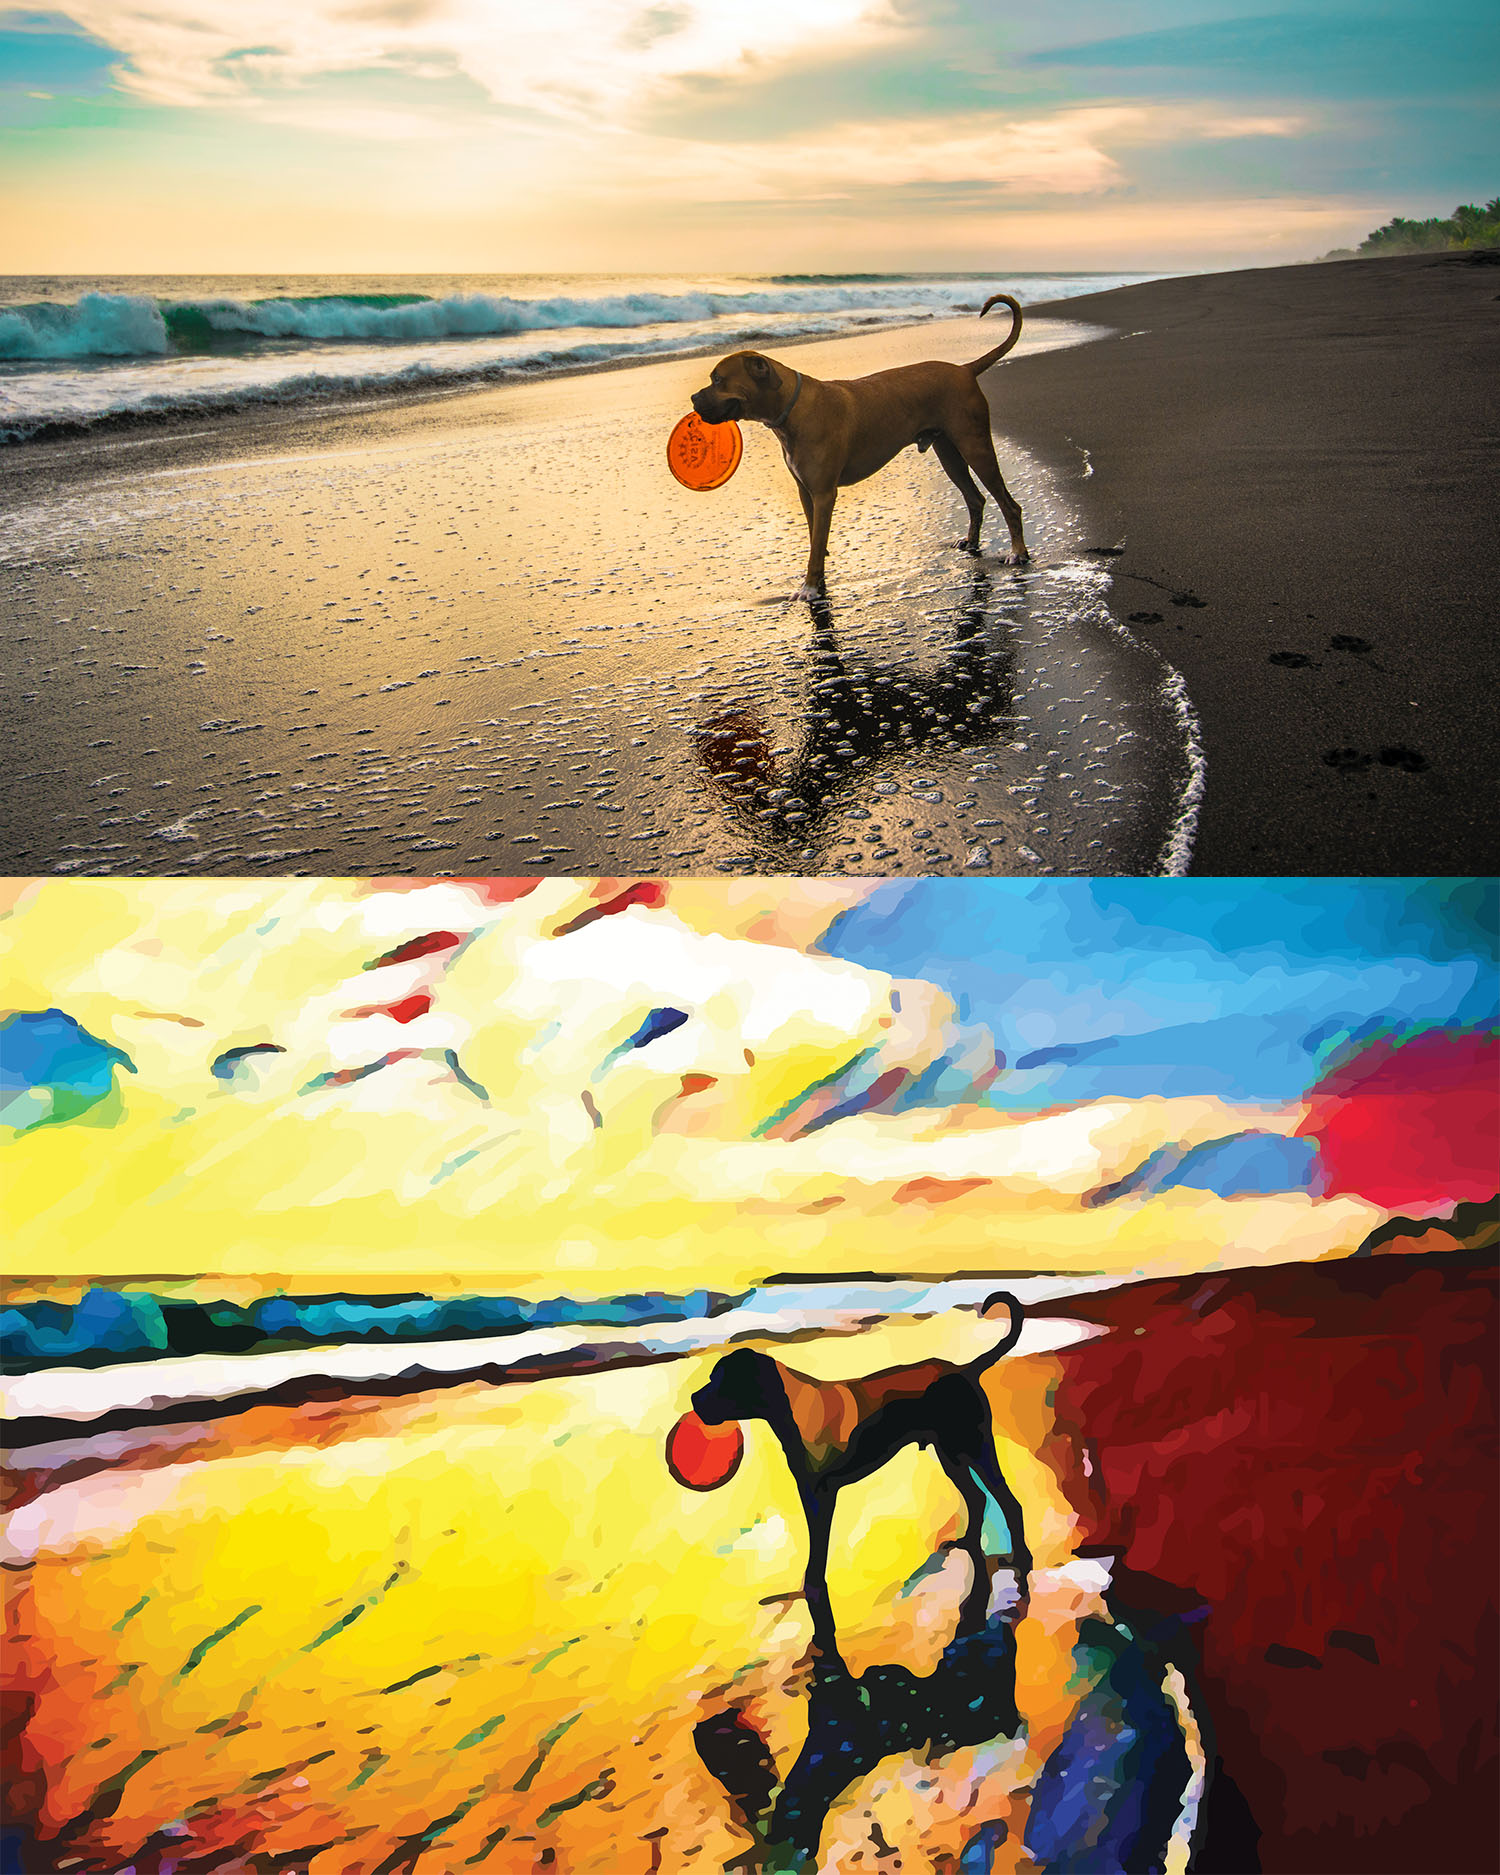 Before and after stylized image of a big dog standing on a beach with a frisbee in its mouth